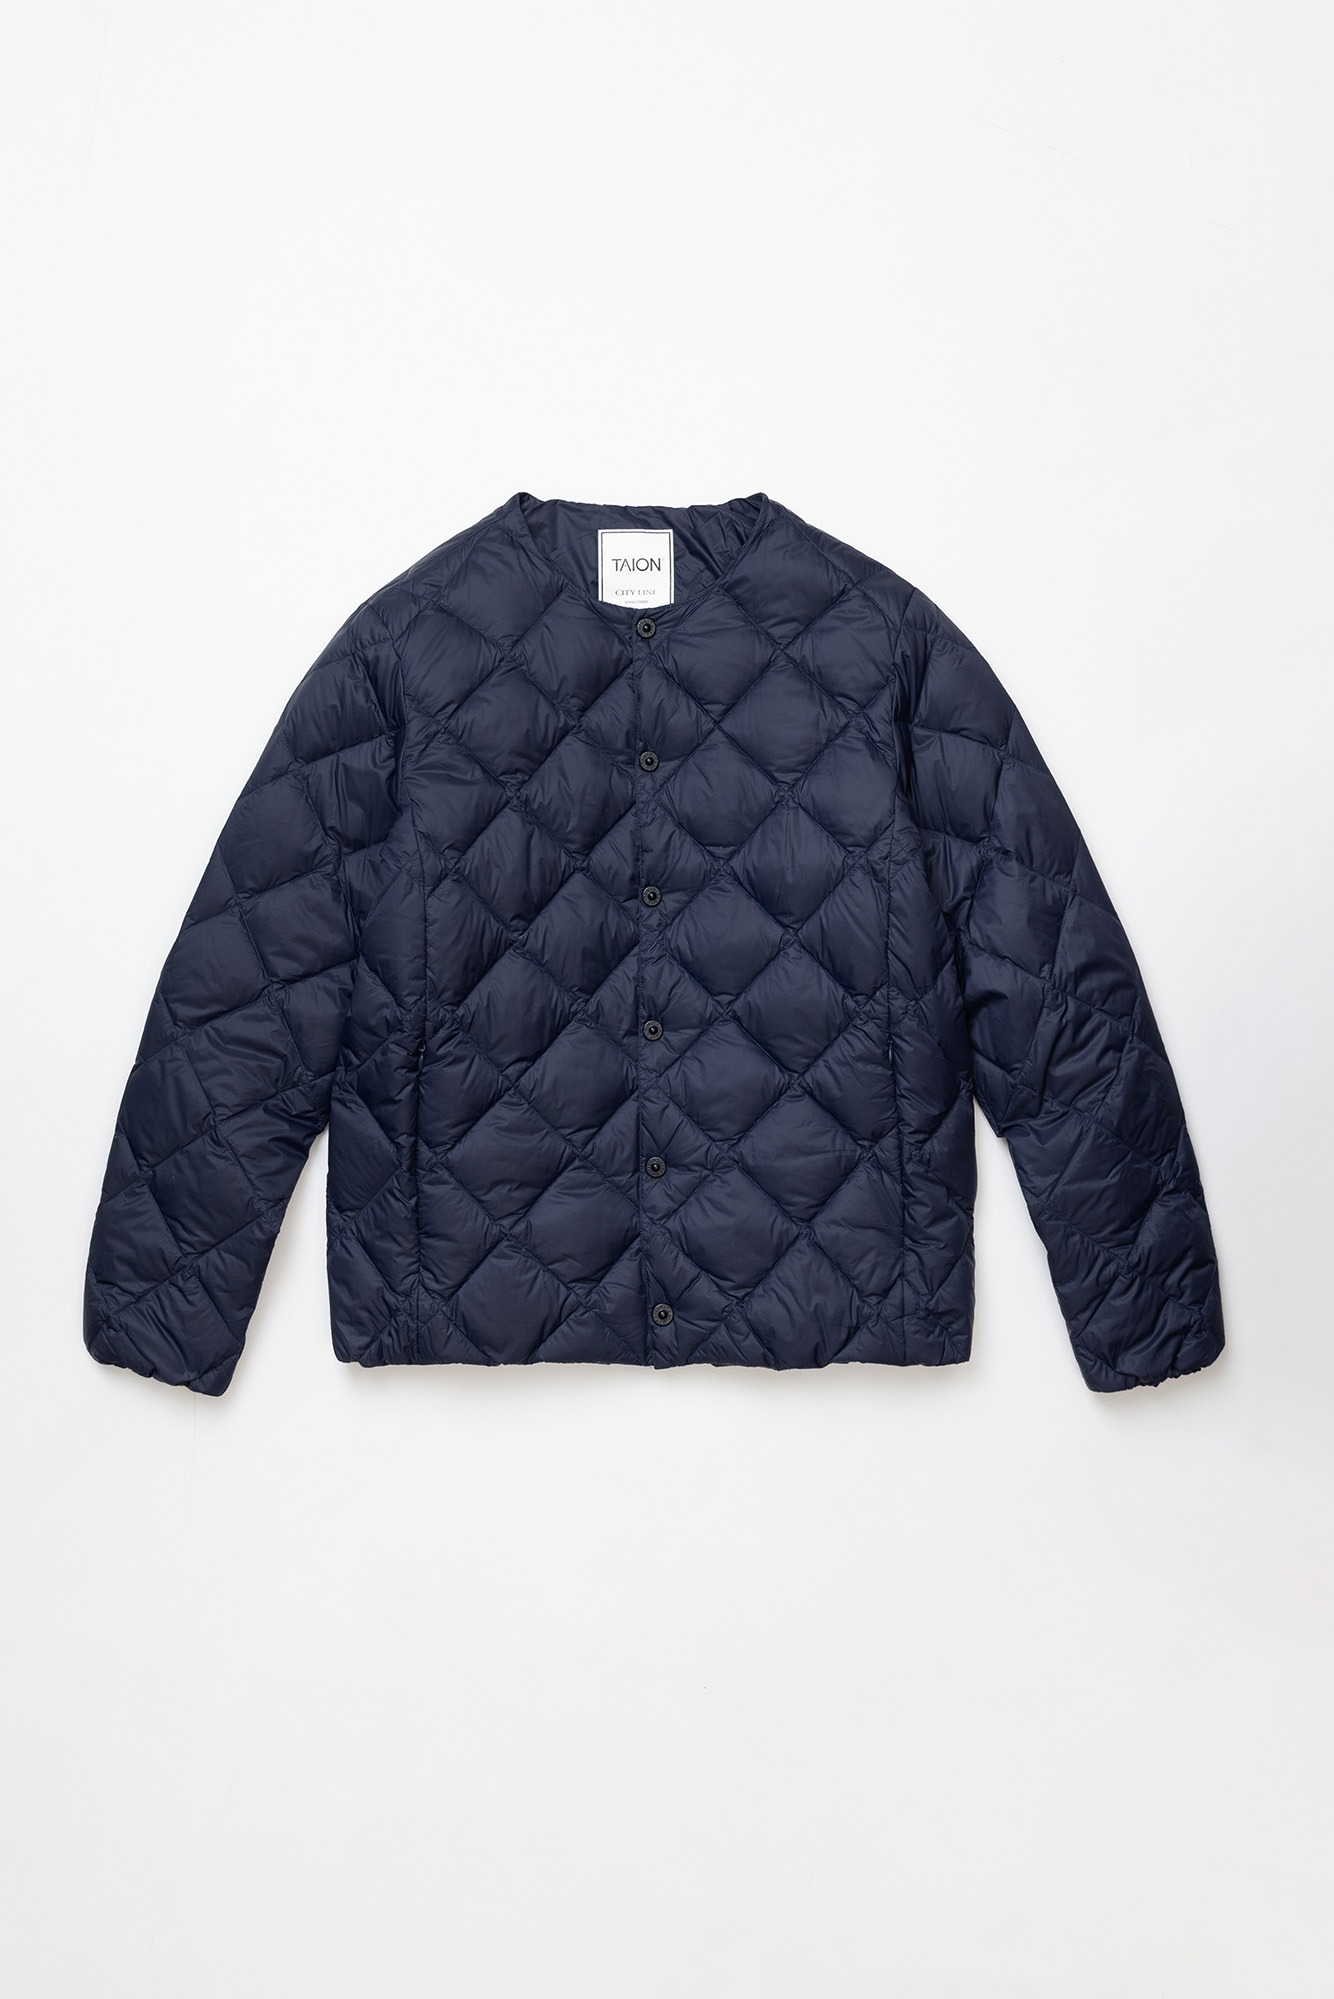 "TAION Crew Neck Down Jacket ""Navy"""